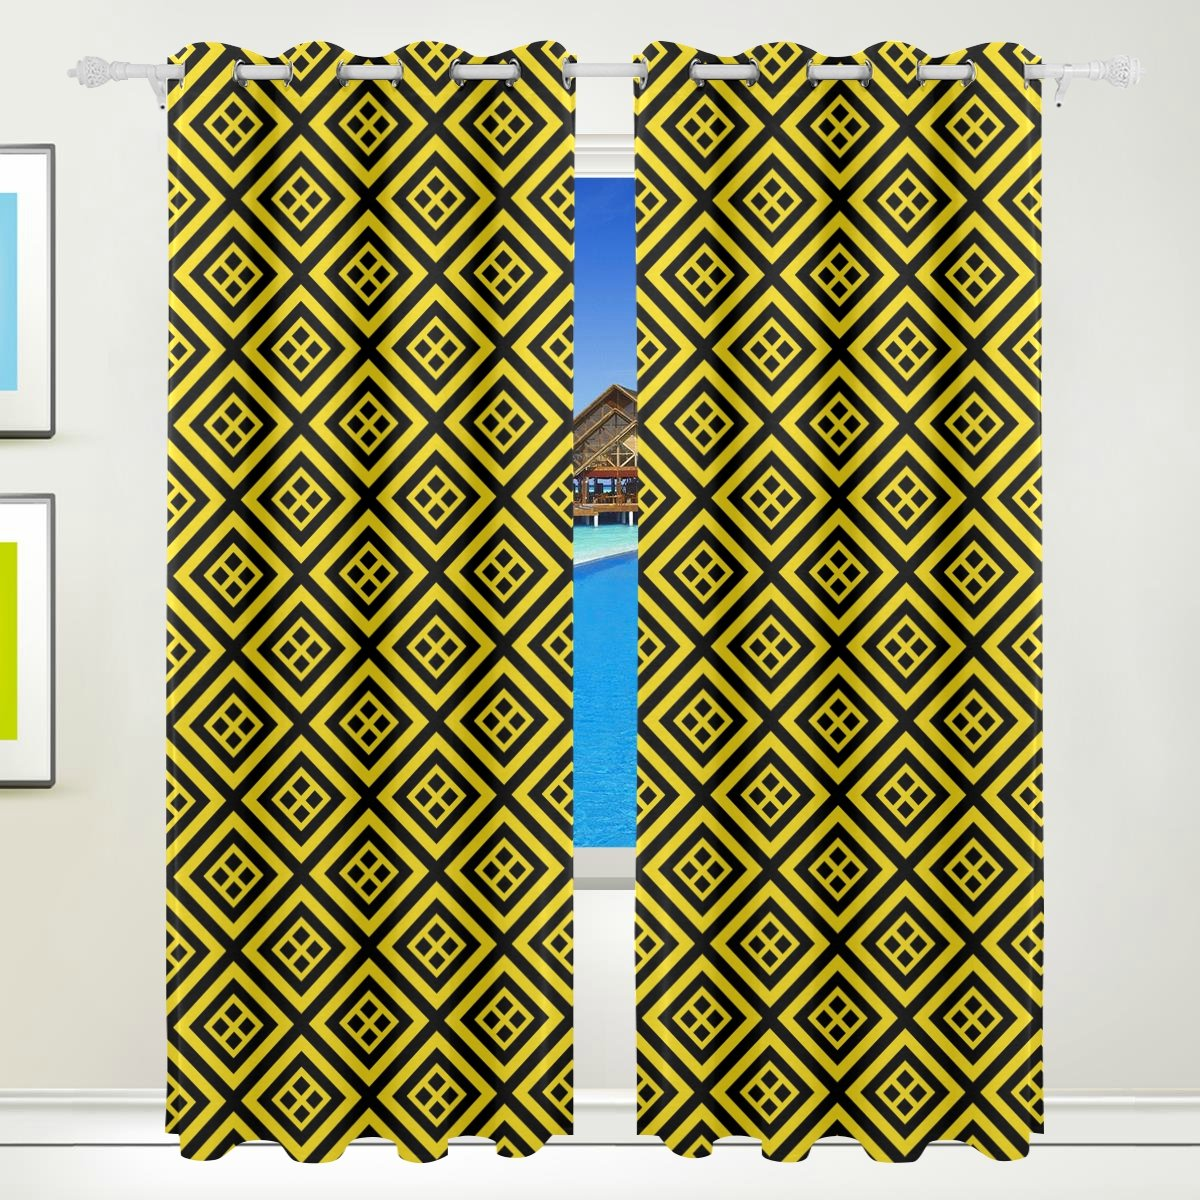 Vantaso Light Shading Window Curtains Abstract Gold Geometric Plaid Polyester 2 Pannels for Kids Girls Boys Bedroom Living Room 84 inch x 55 inch